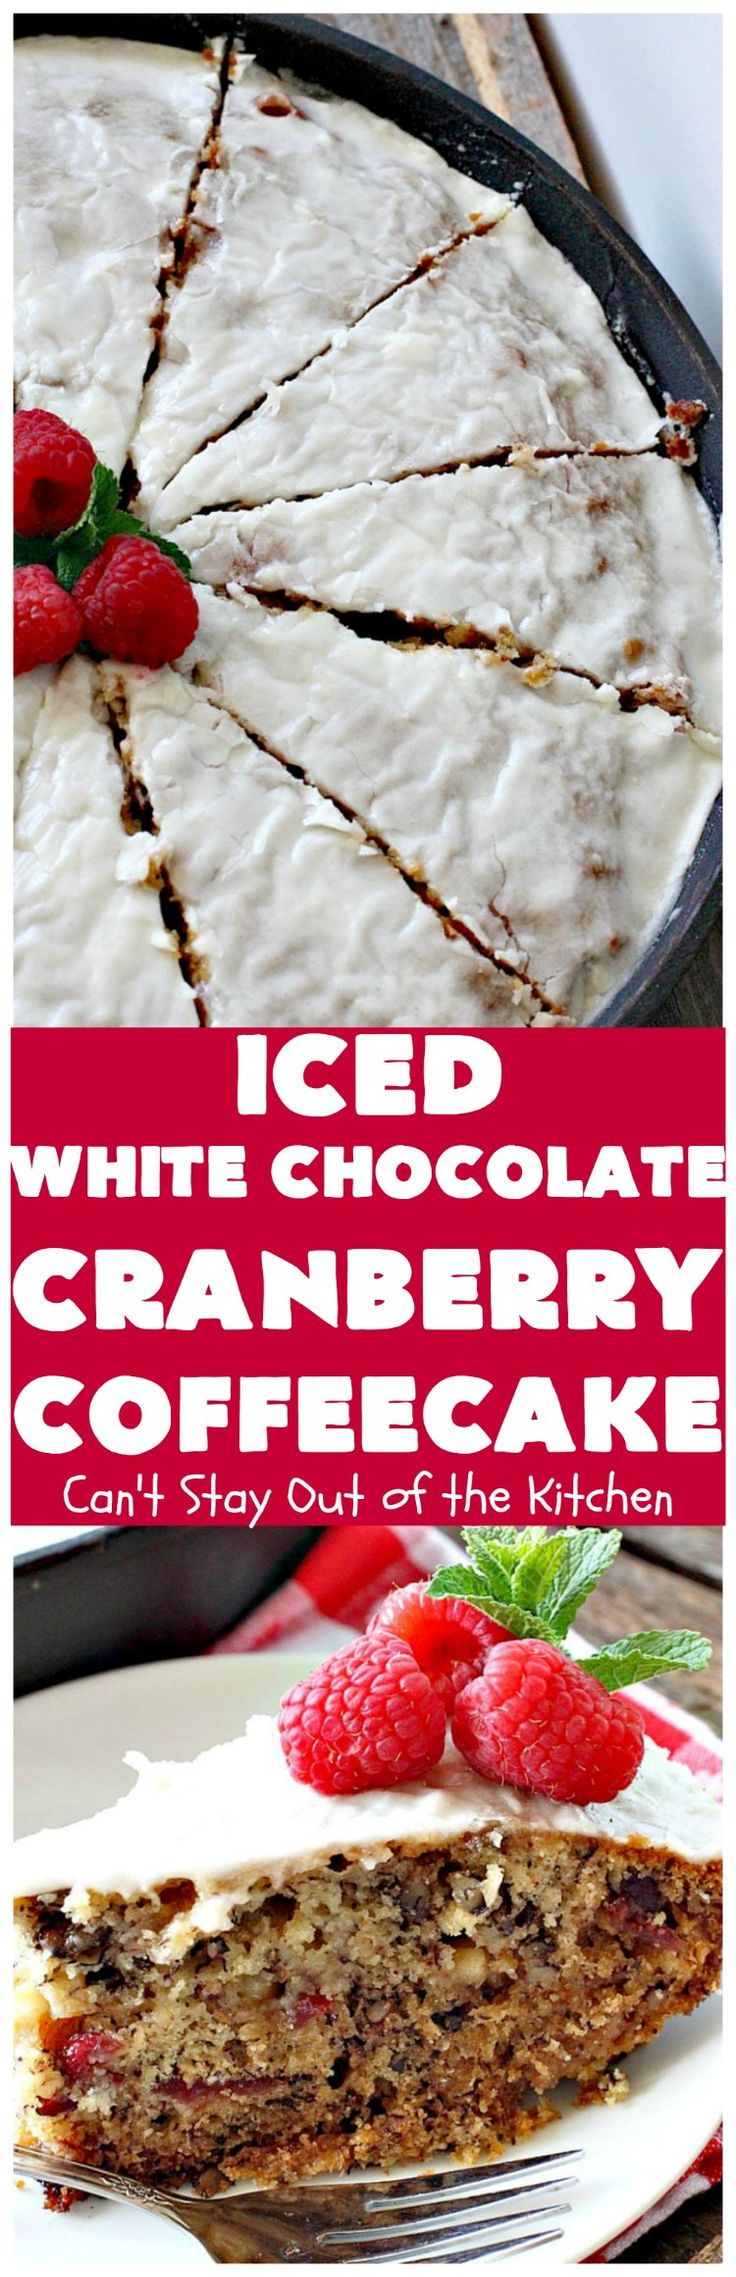 Iced White Chocolate Cranberry Coffeecake | Can't Stay Out of the Kitchen | this #coffeecake will make you drool! It's filled with white #chocolate & #craisins. Perfect for a #holiday #breakfast or #dessert.